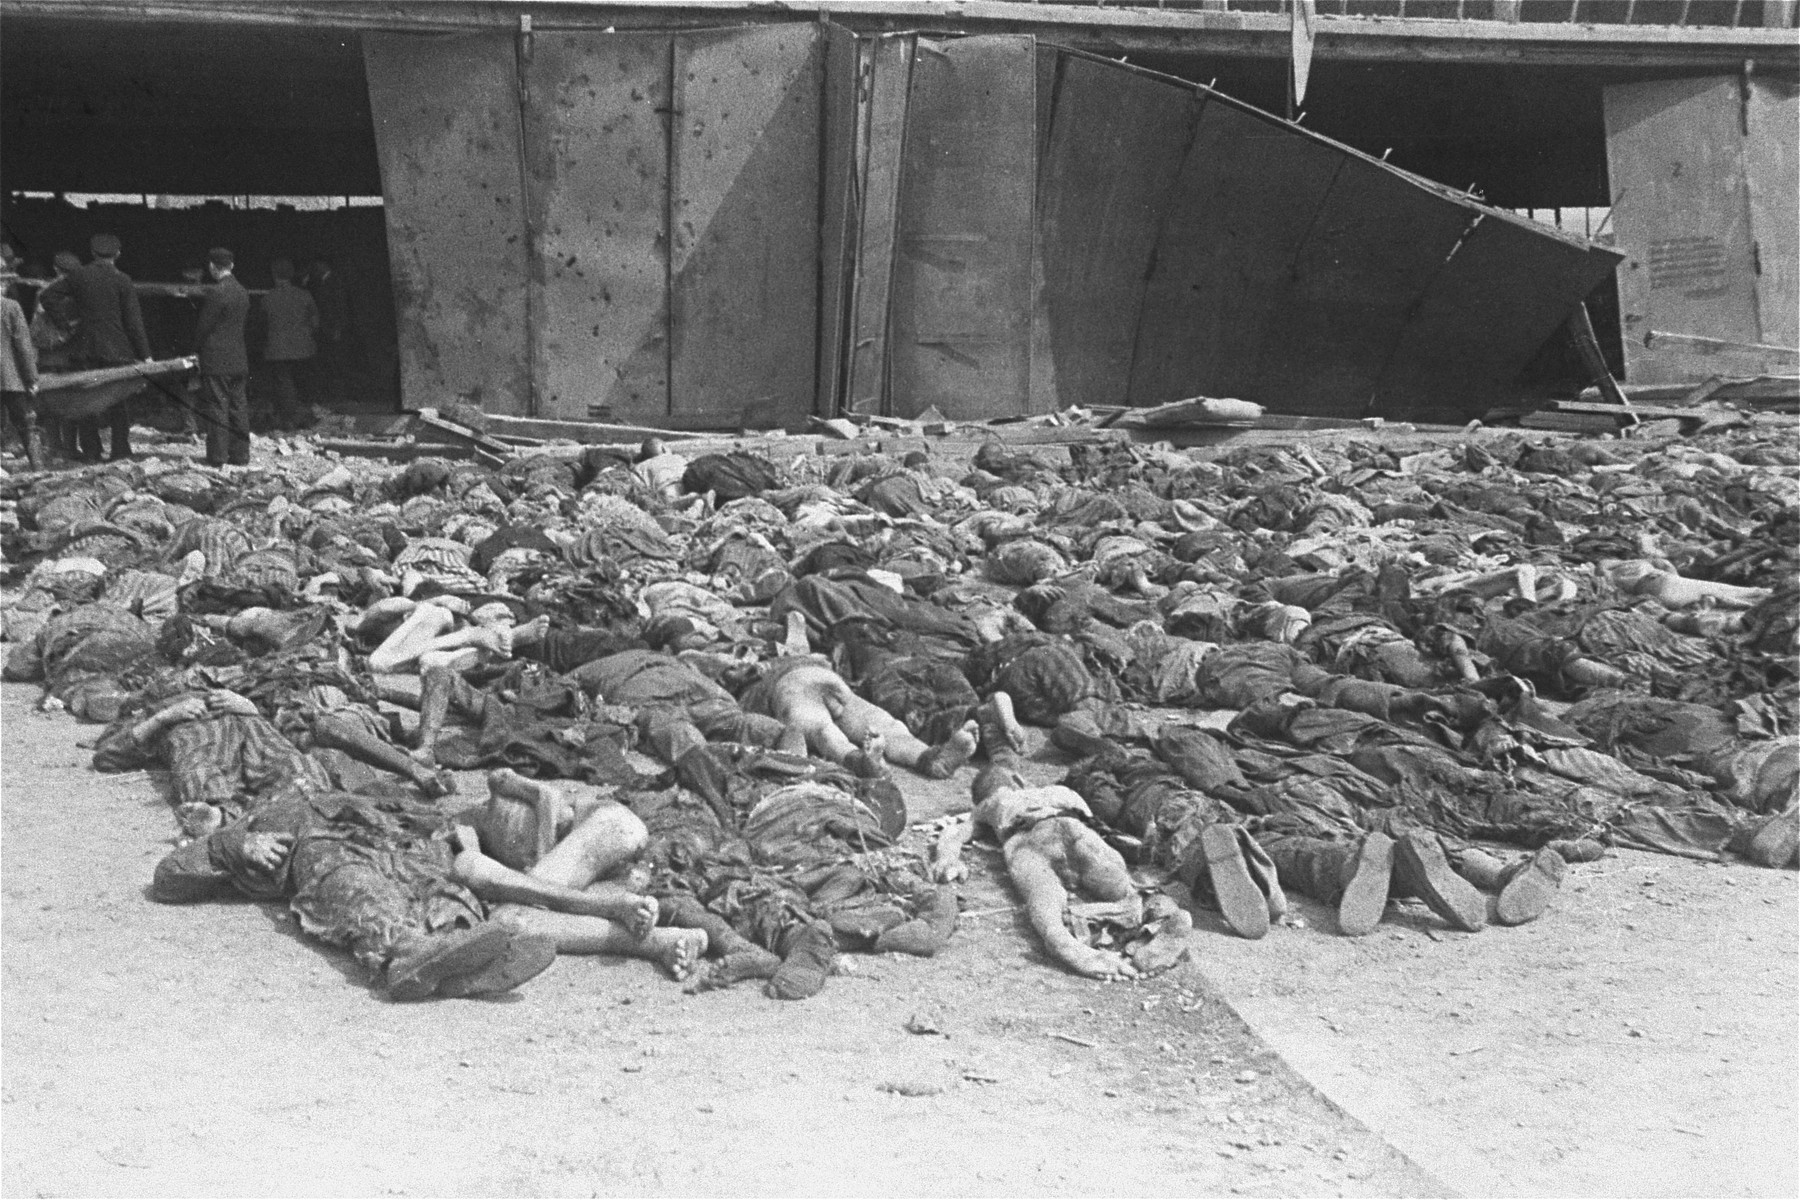 Rows of corpses lie outside the central barracks (Boelke Kaserne) in the Nordhausen concentration camp.